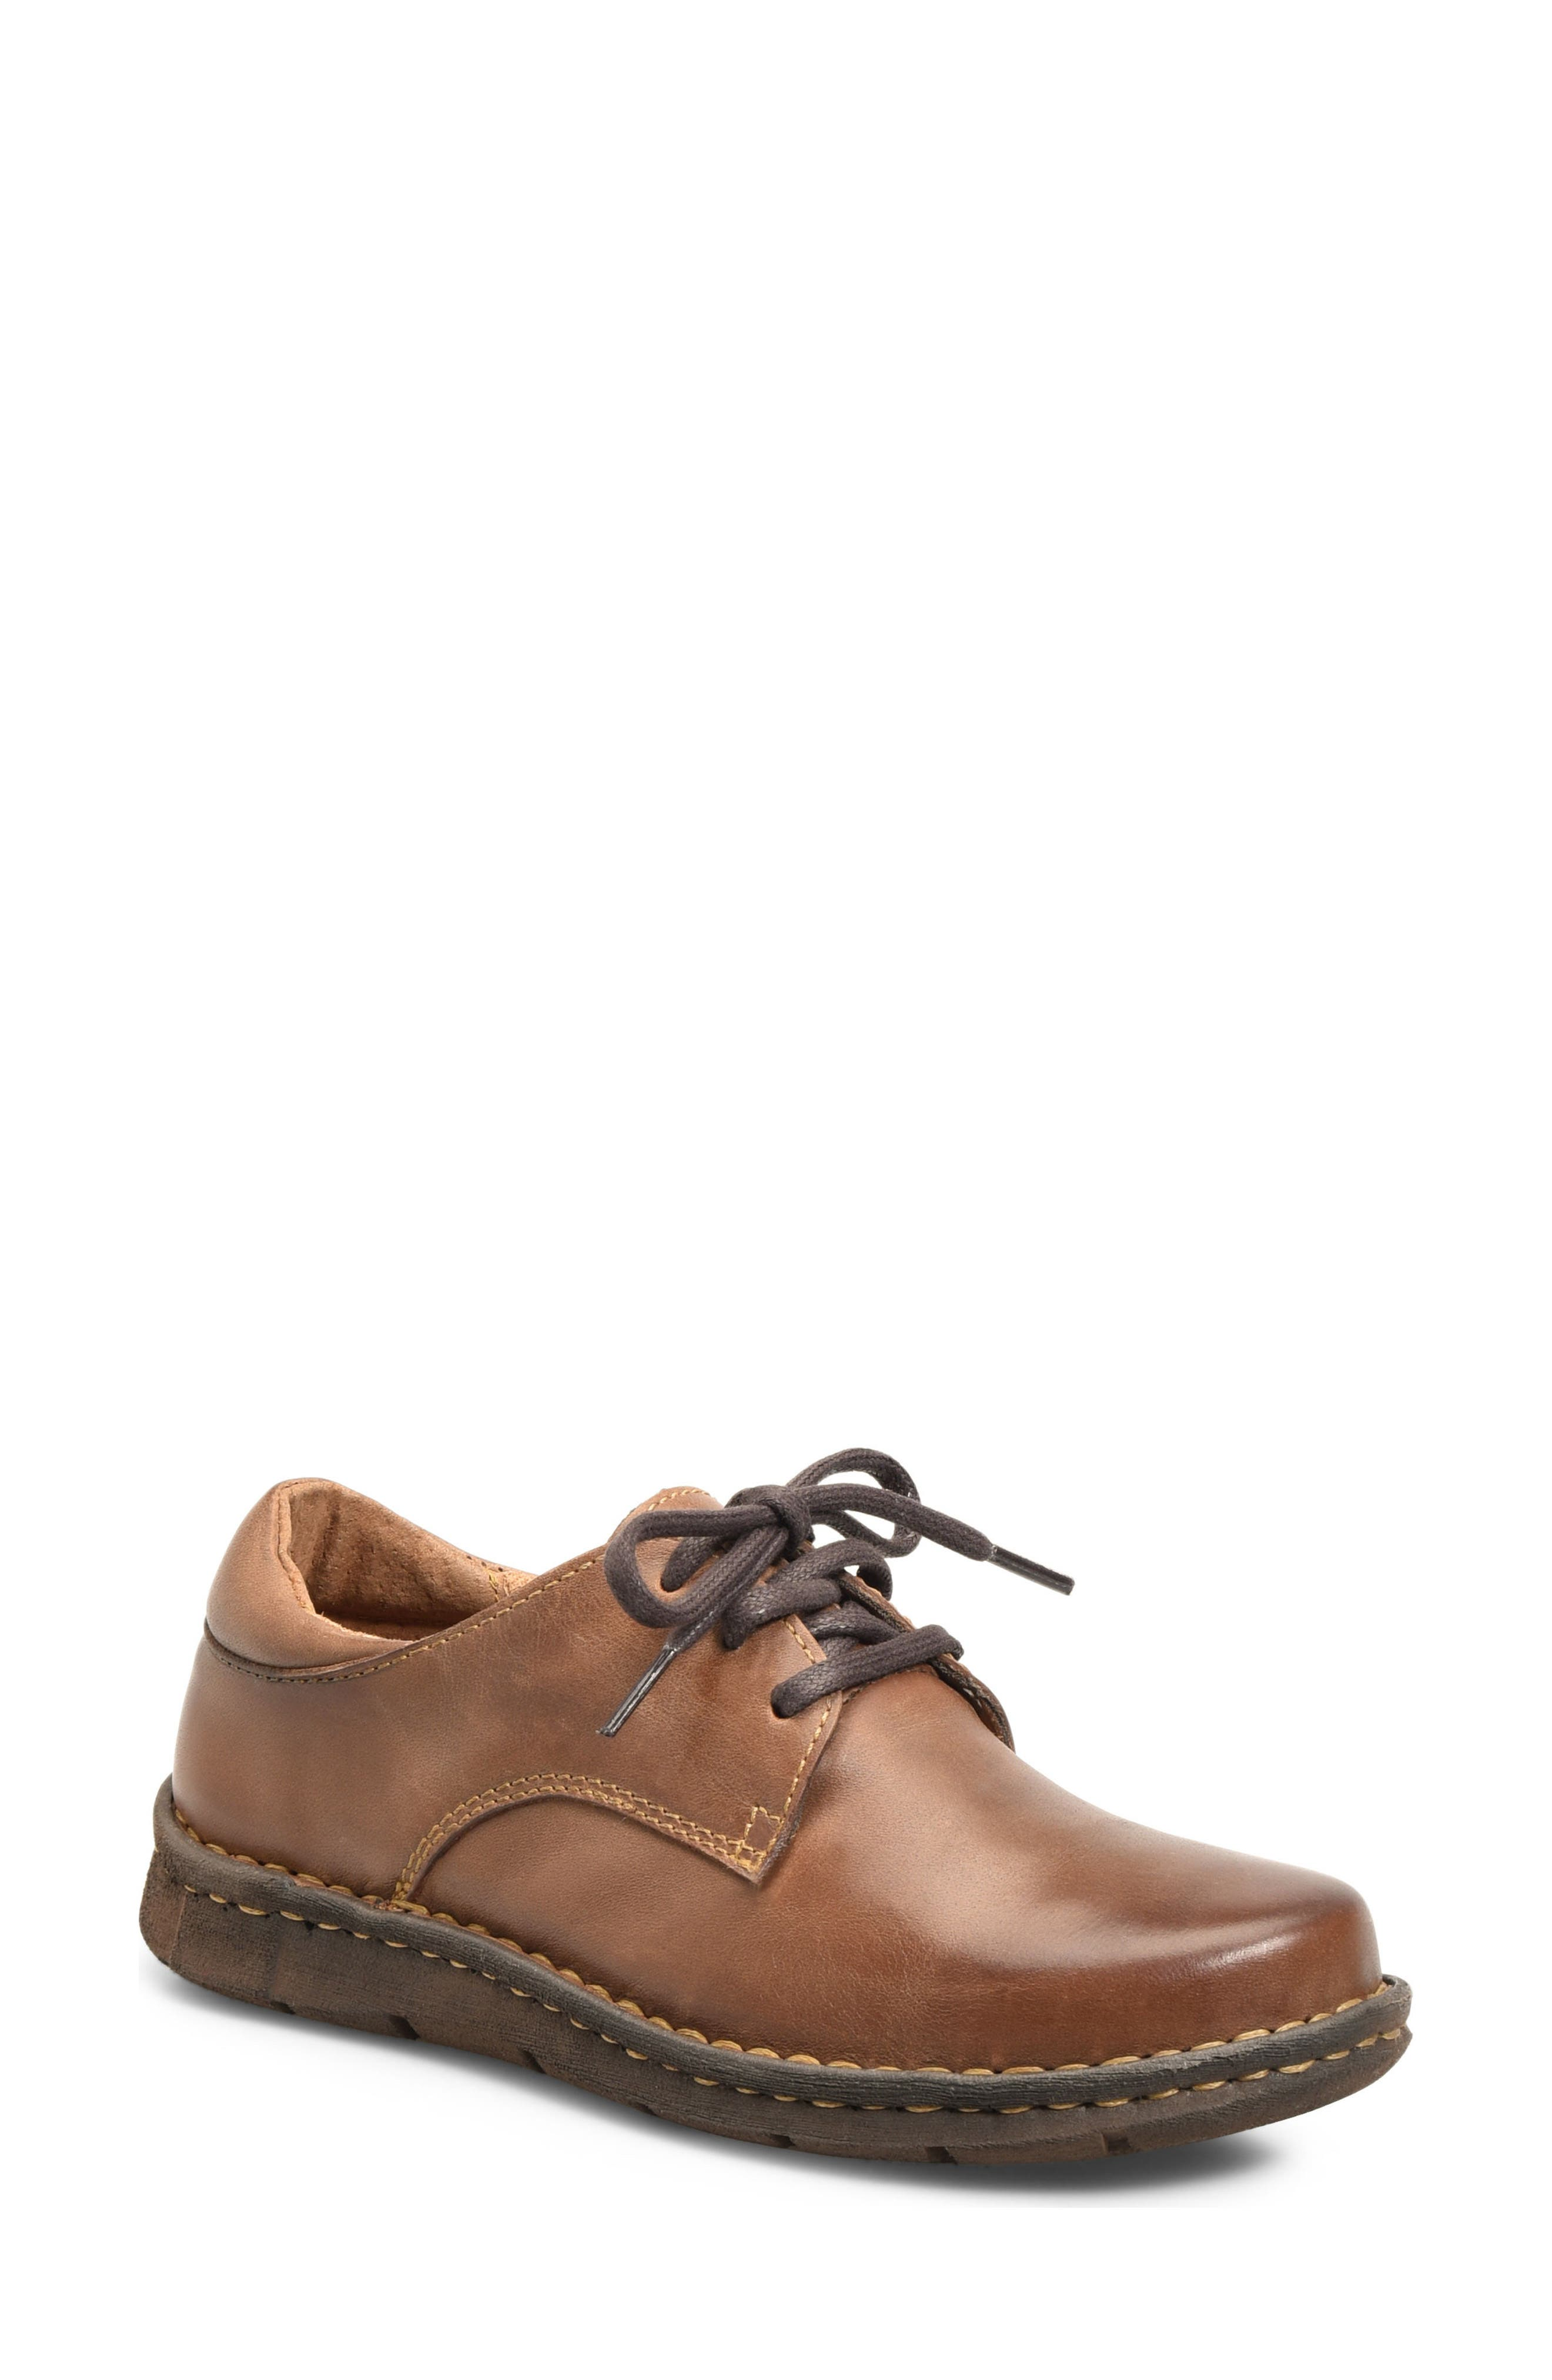 Motto Oxford,                             Main thumbnail 1, color,                             Brown Leather